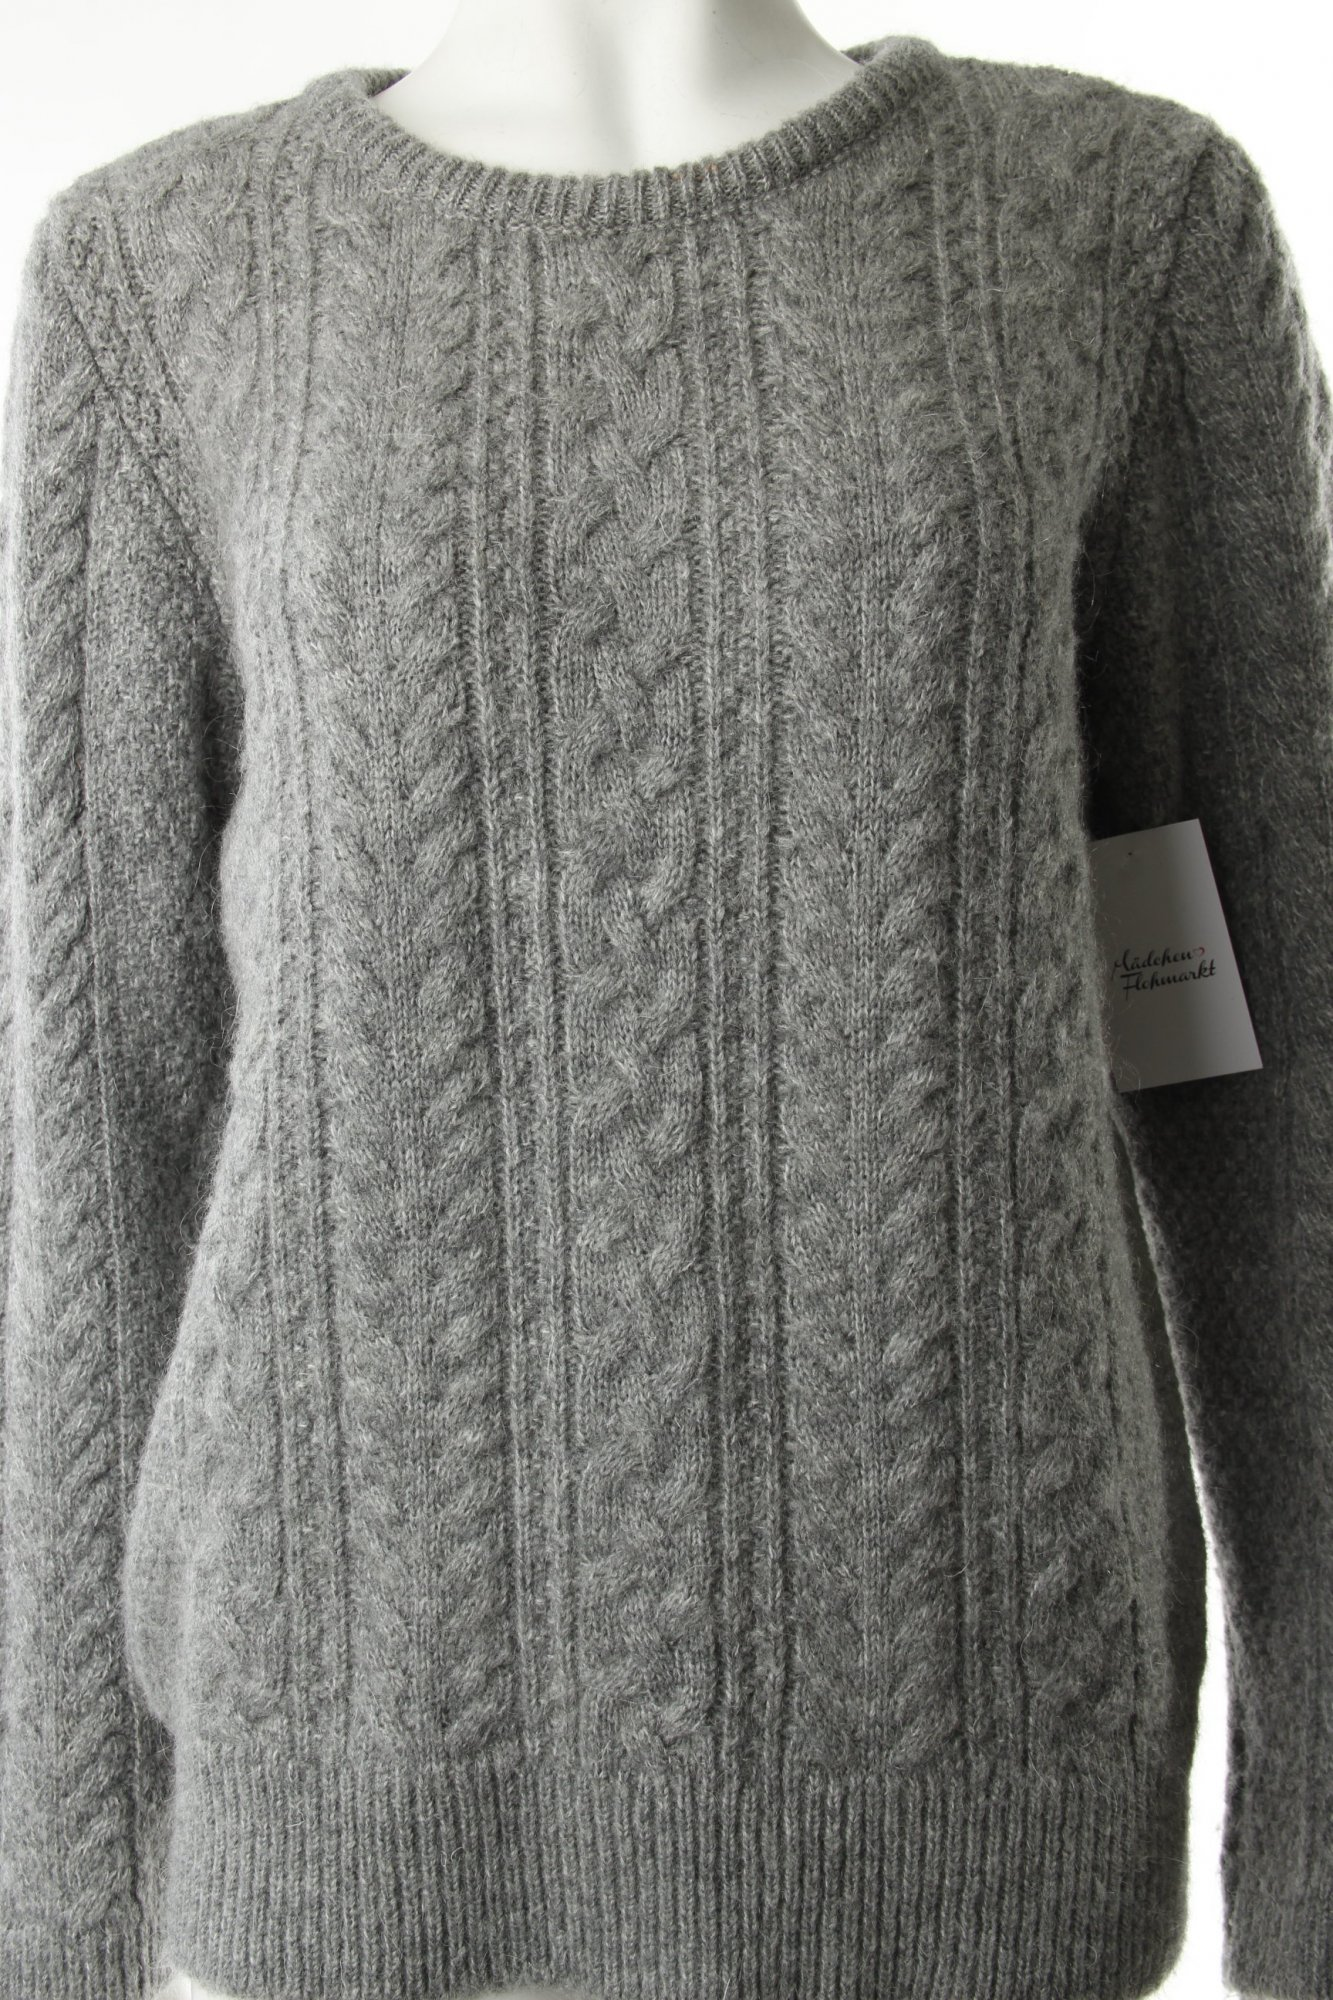 zara strickpullover grau zopfmuster schleifen detail damen gr de 40 pullover eur 31 00. Black Bedroom Furniture Sets. Home Design Ideas